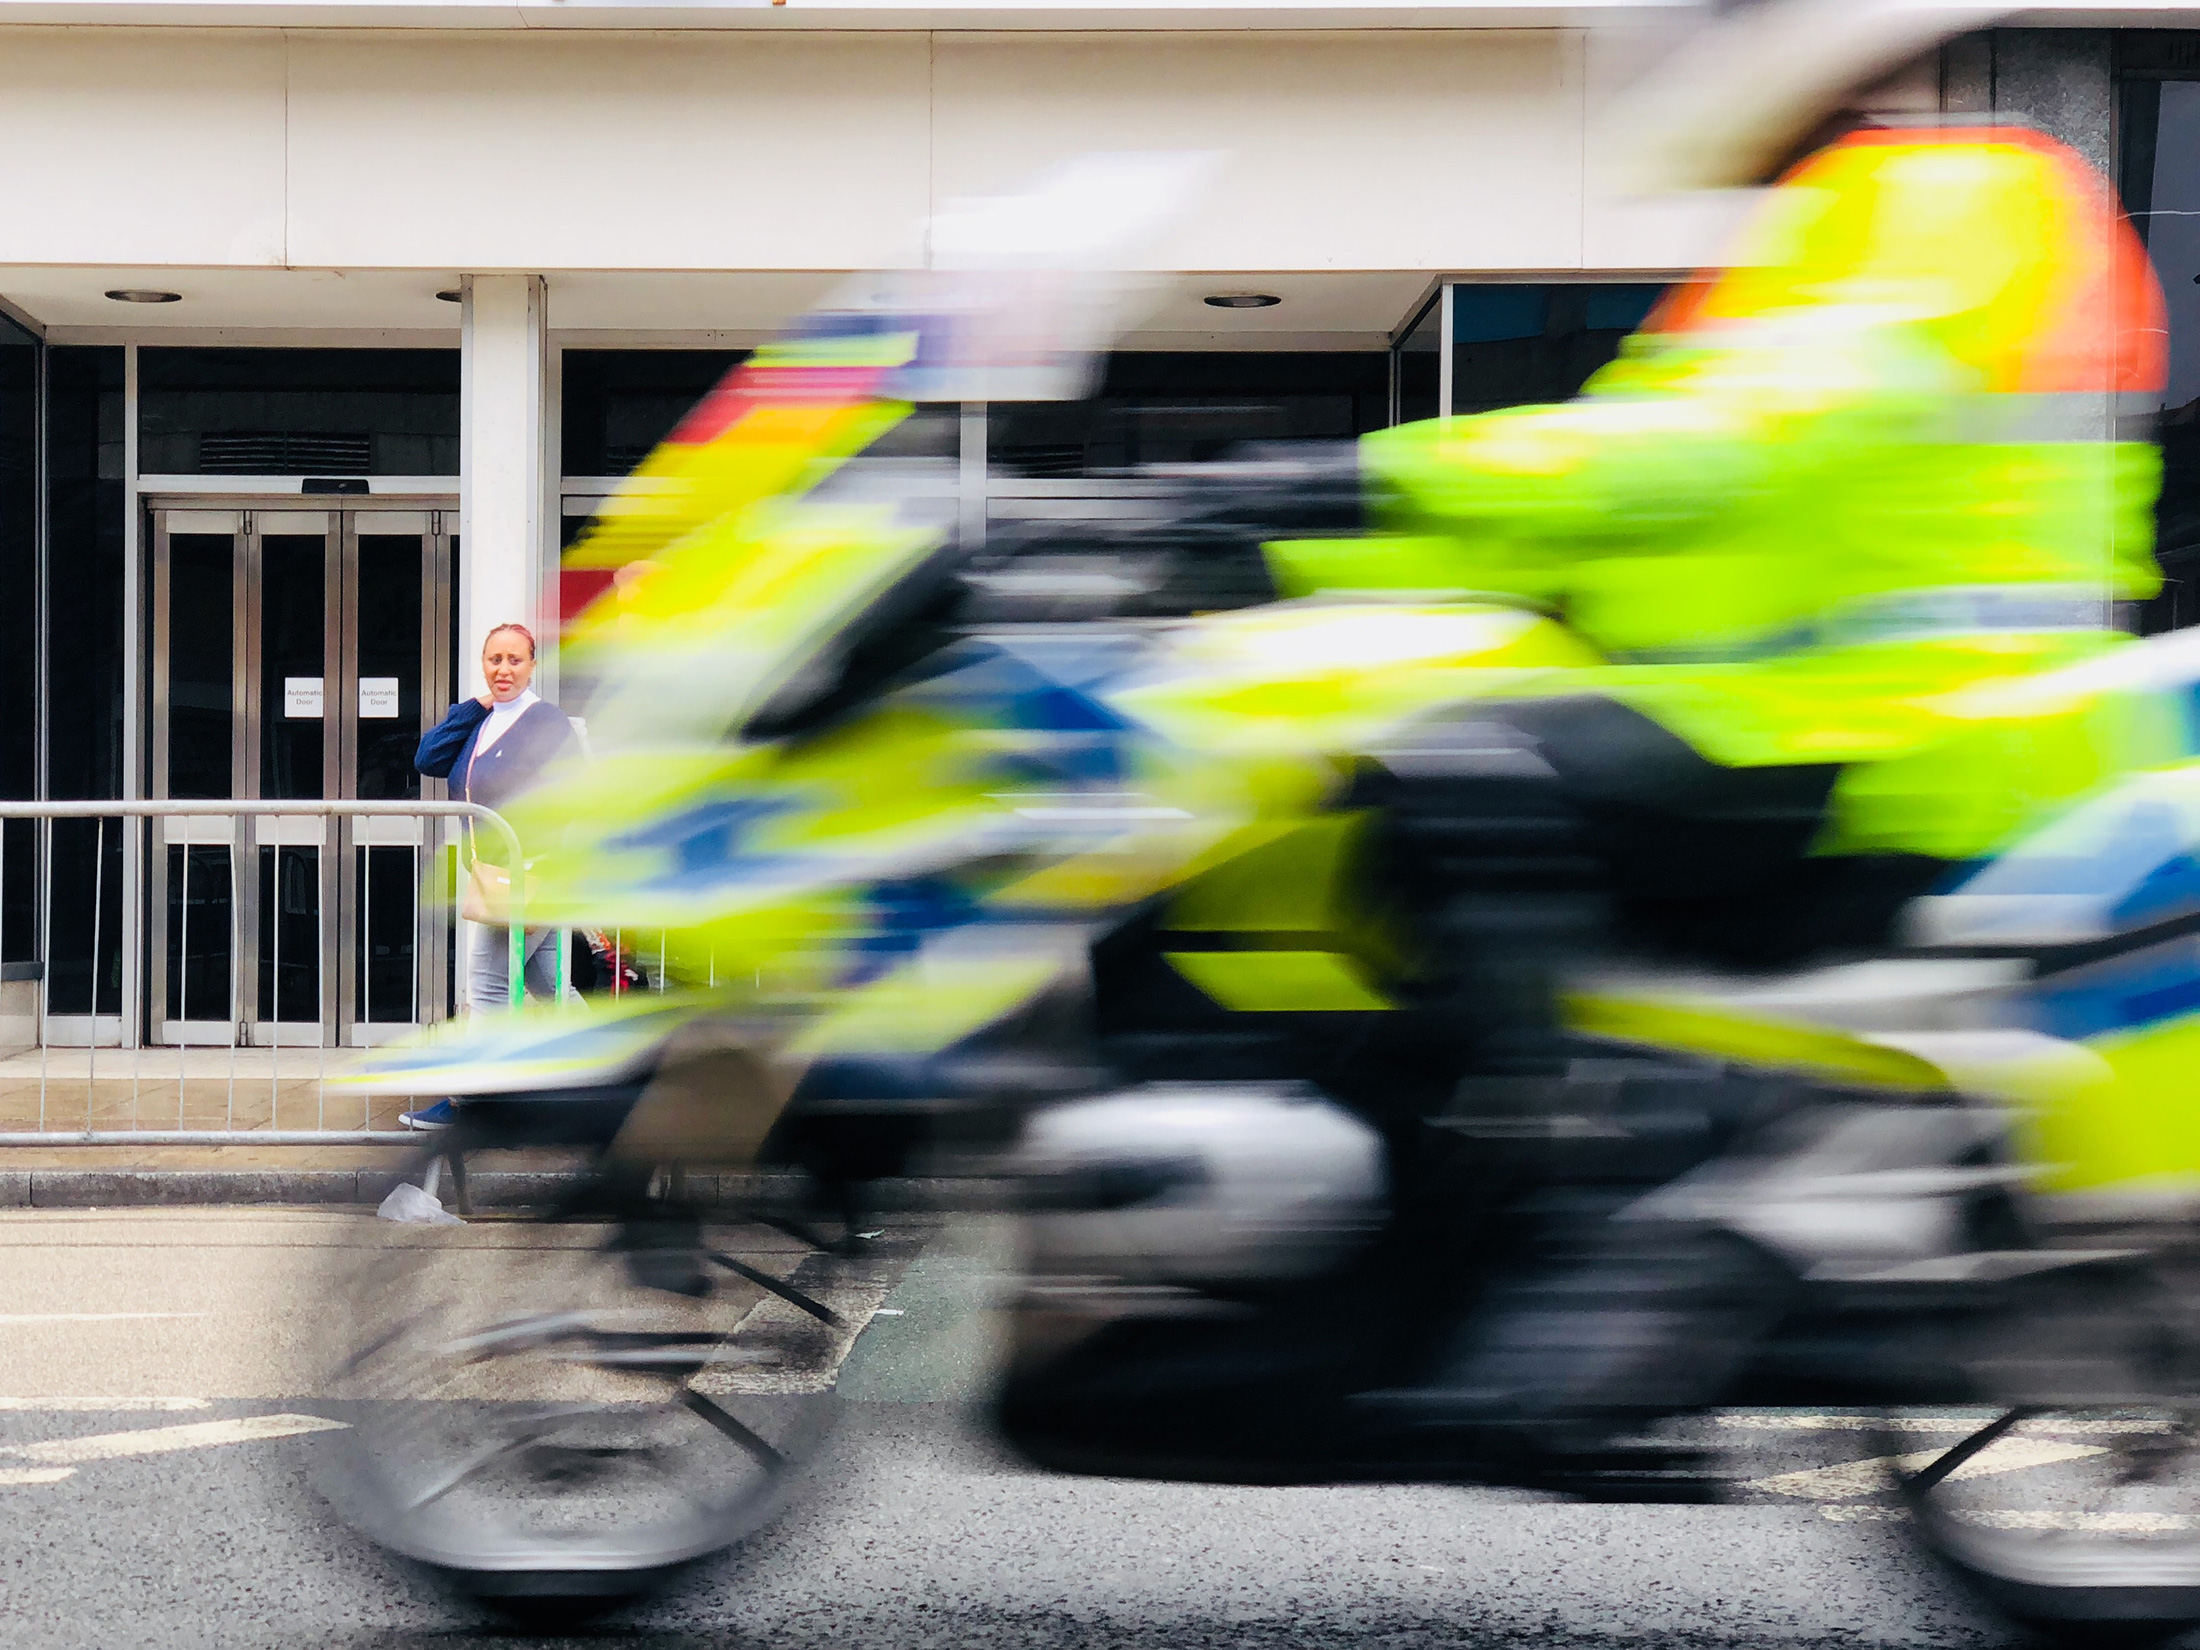 Police motorcycle rushing down a London street